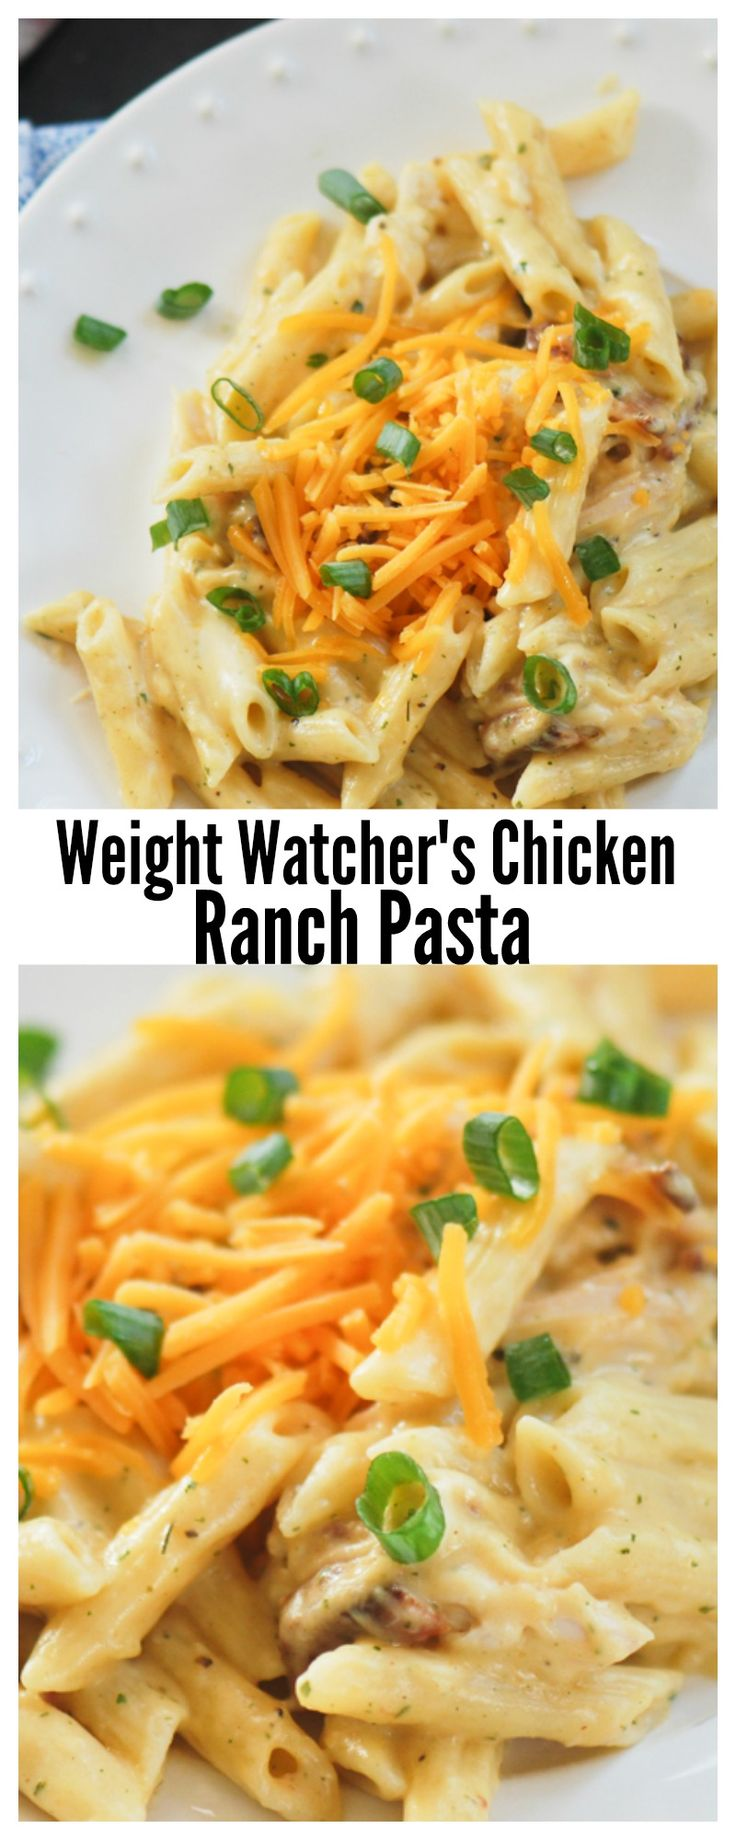 Weight Watchers Chicken Ranch Pasta